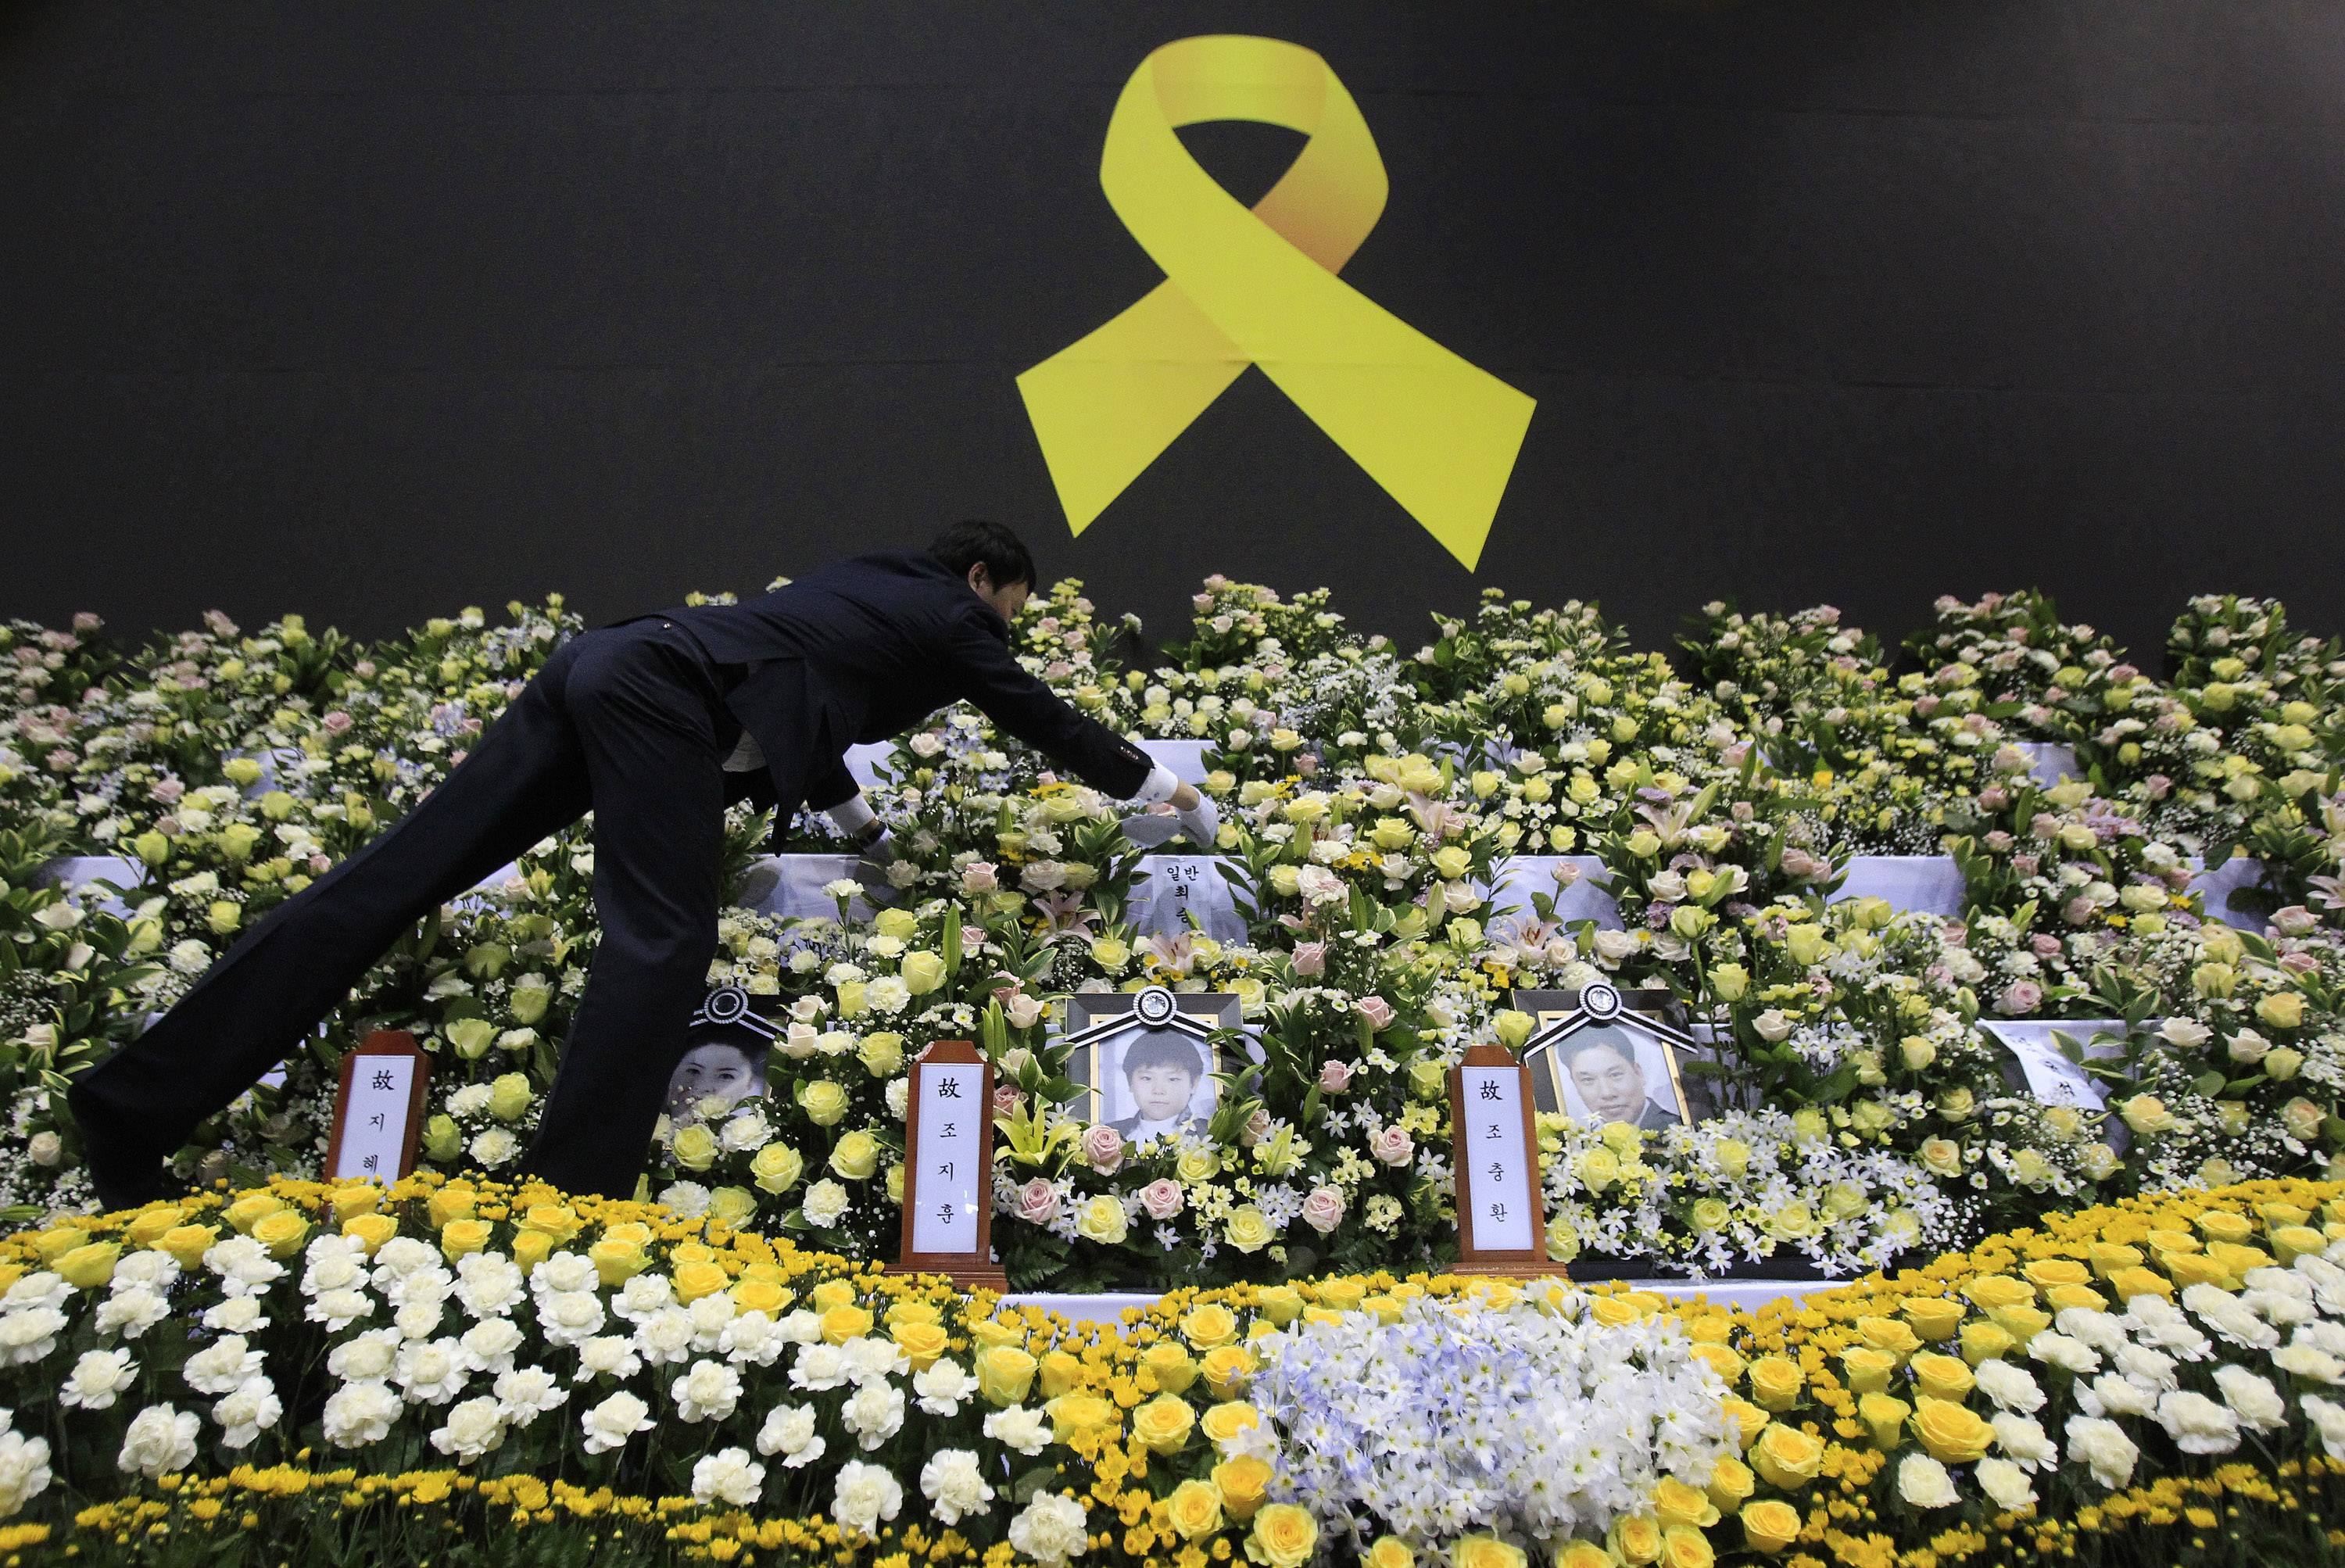 A funeral service employee sets up a group memorial altar Tuesday for victims of the sunken ferry. South Korean President Park Geun-hye apologized Tuesday for the government's inept initial response to a deadly ferry sinking as divers fought strong currents in their search for nearly 100 passengers still missing nearly two weeks after the accident.